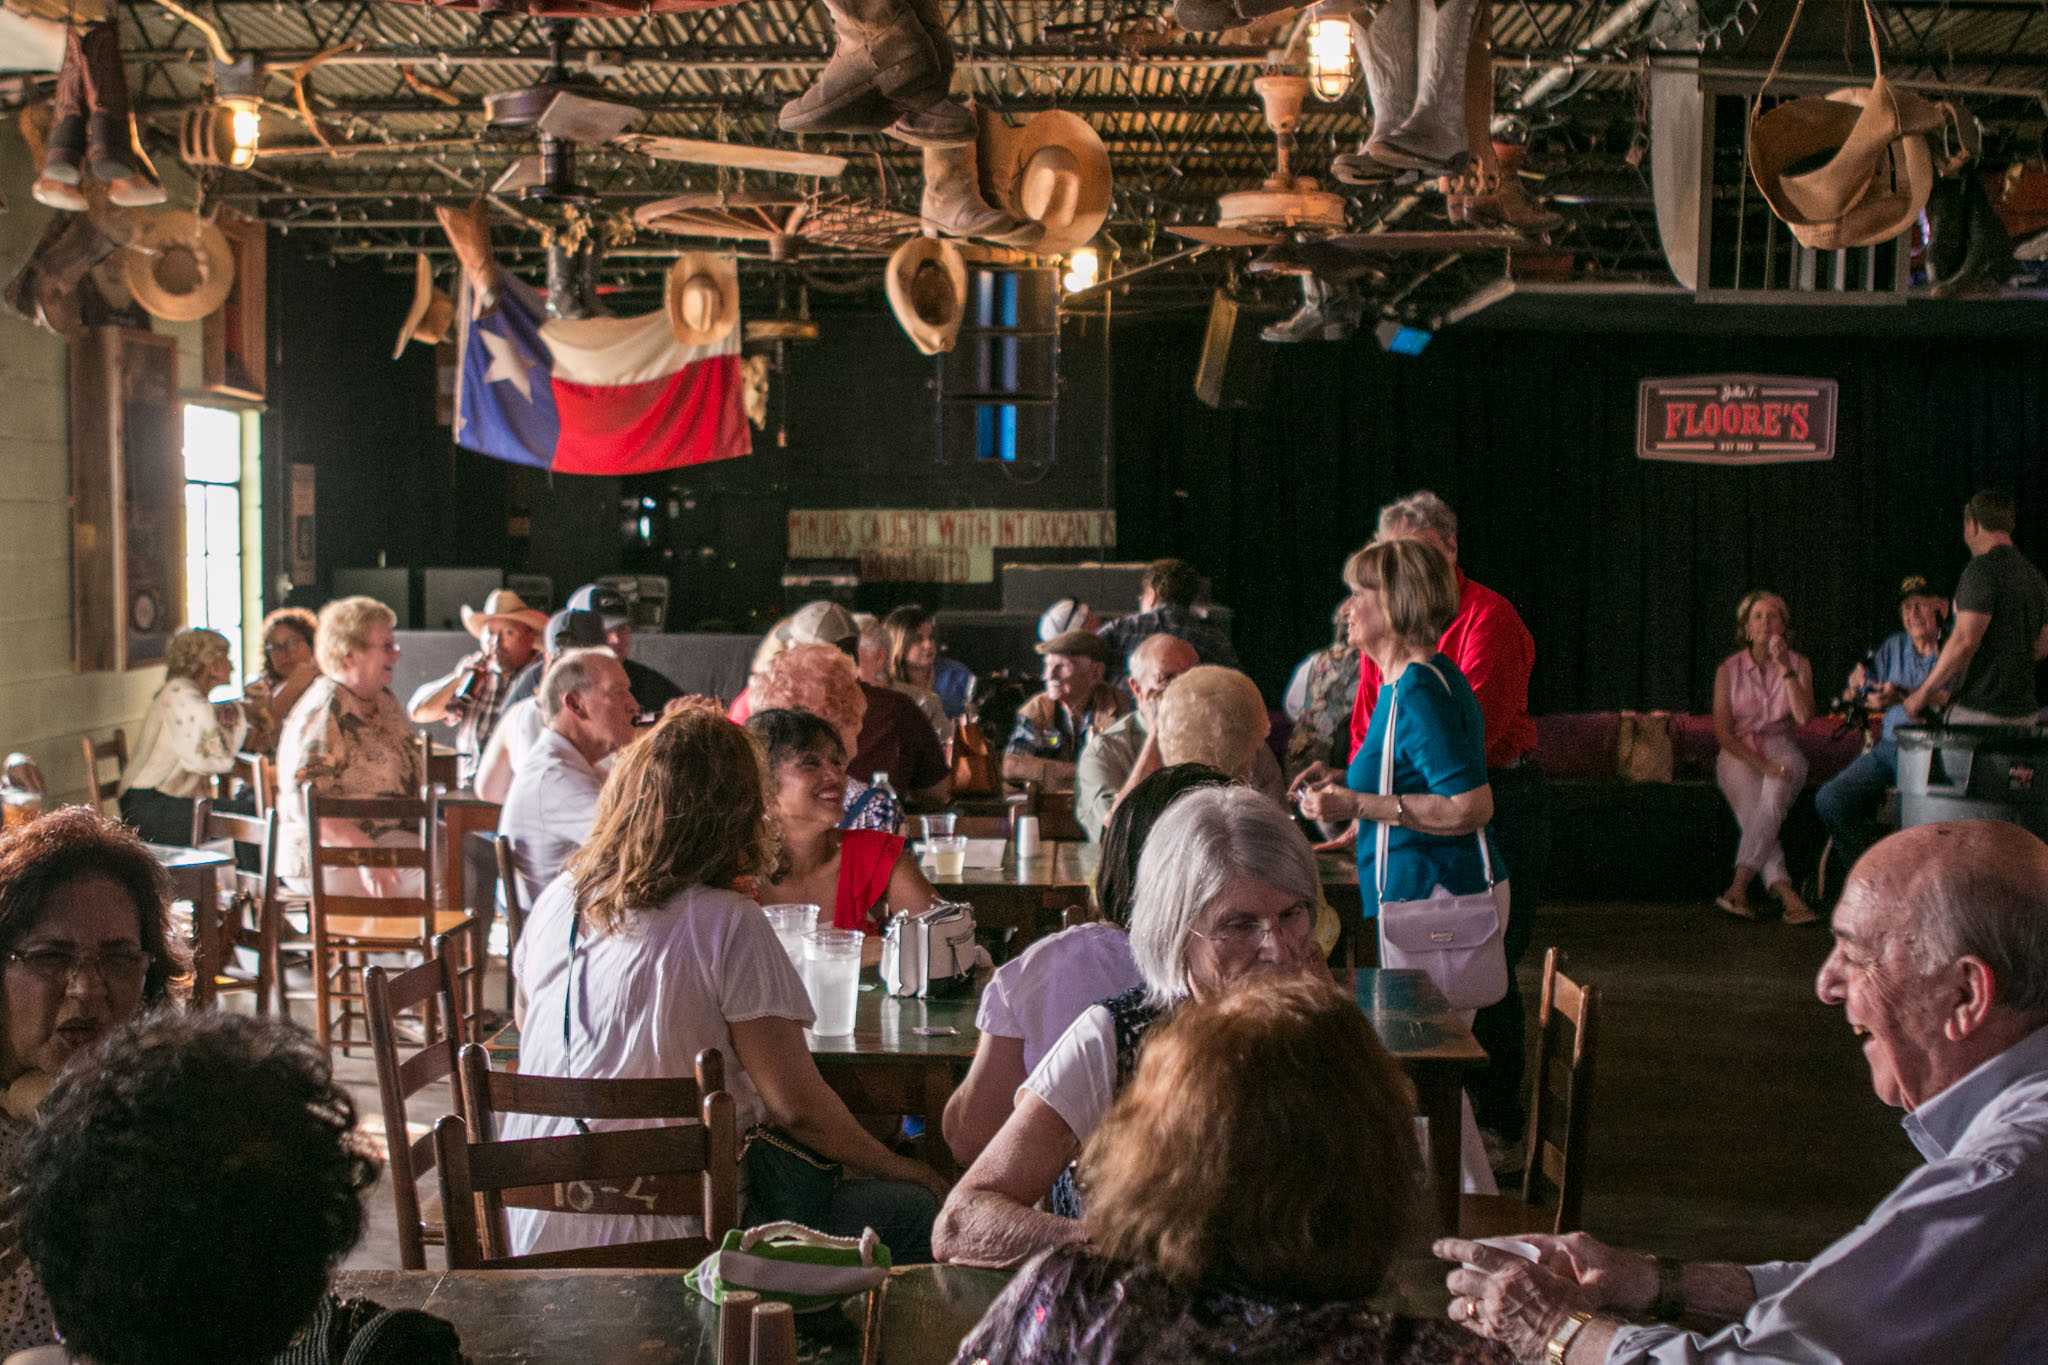 A large crowd gathers at John T. Floore's Country Store in Helotes for a reunion to celebrate 100 years since the birth of Kelly Field.